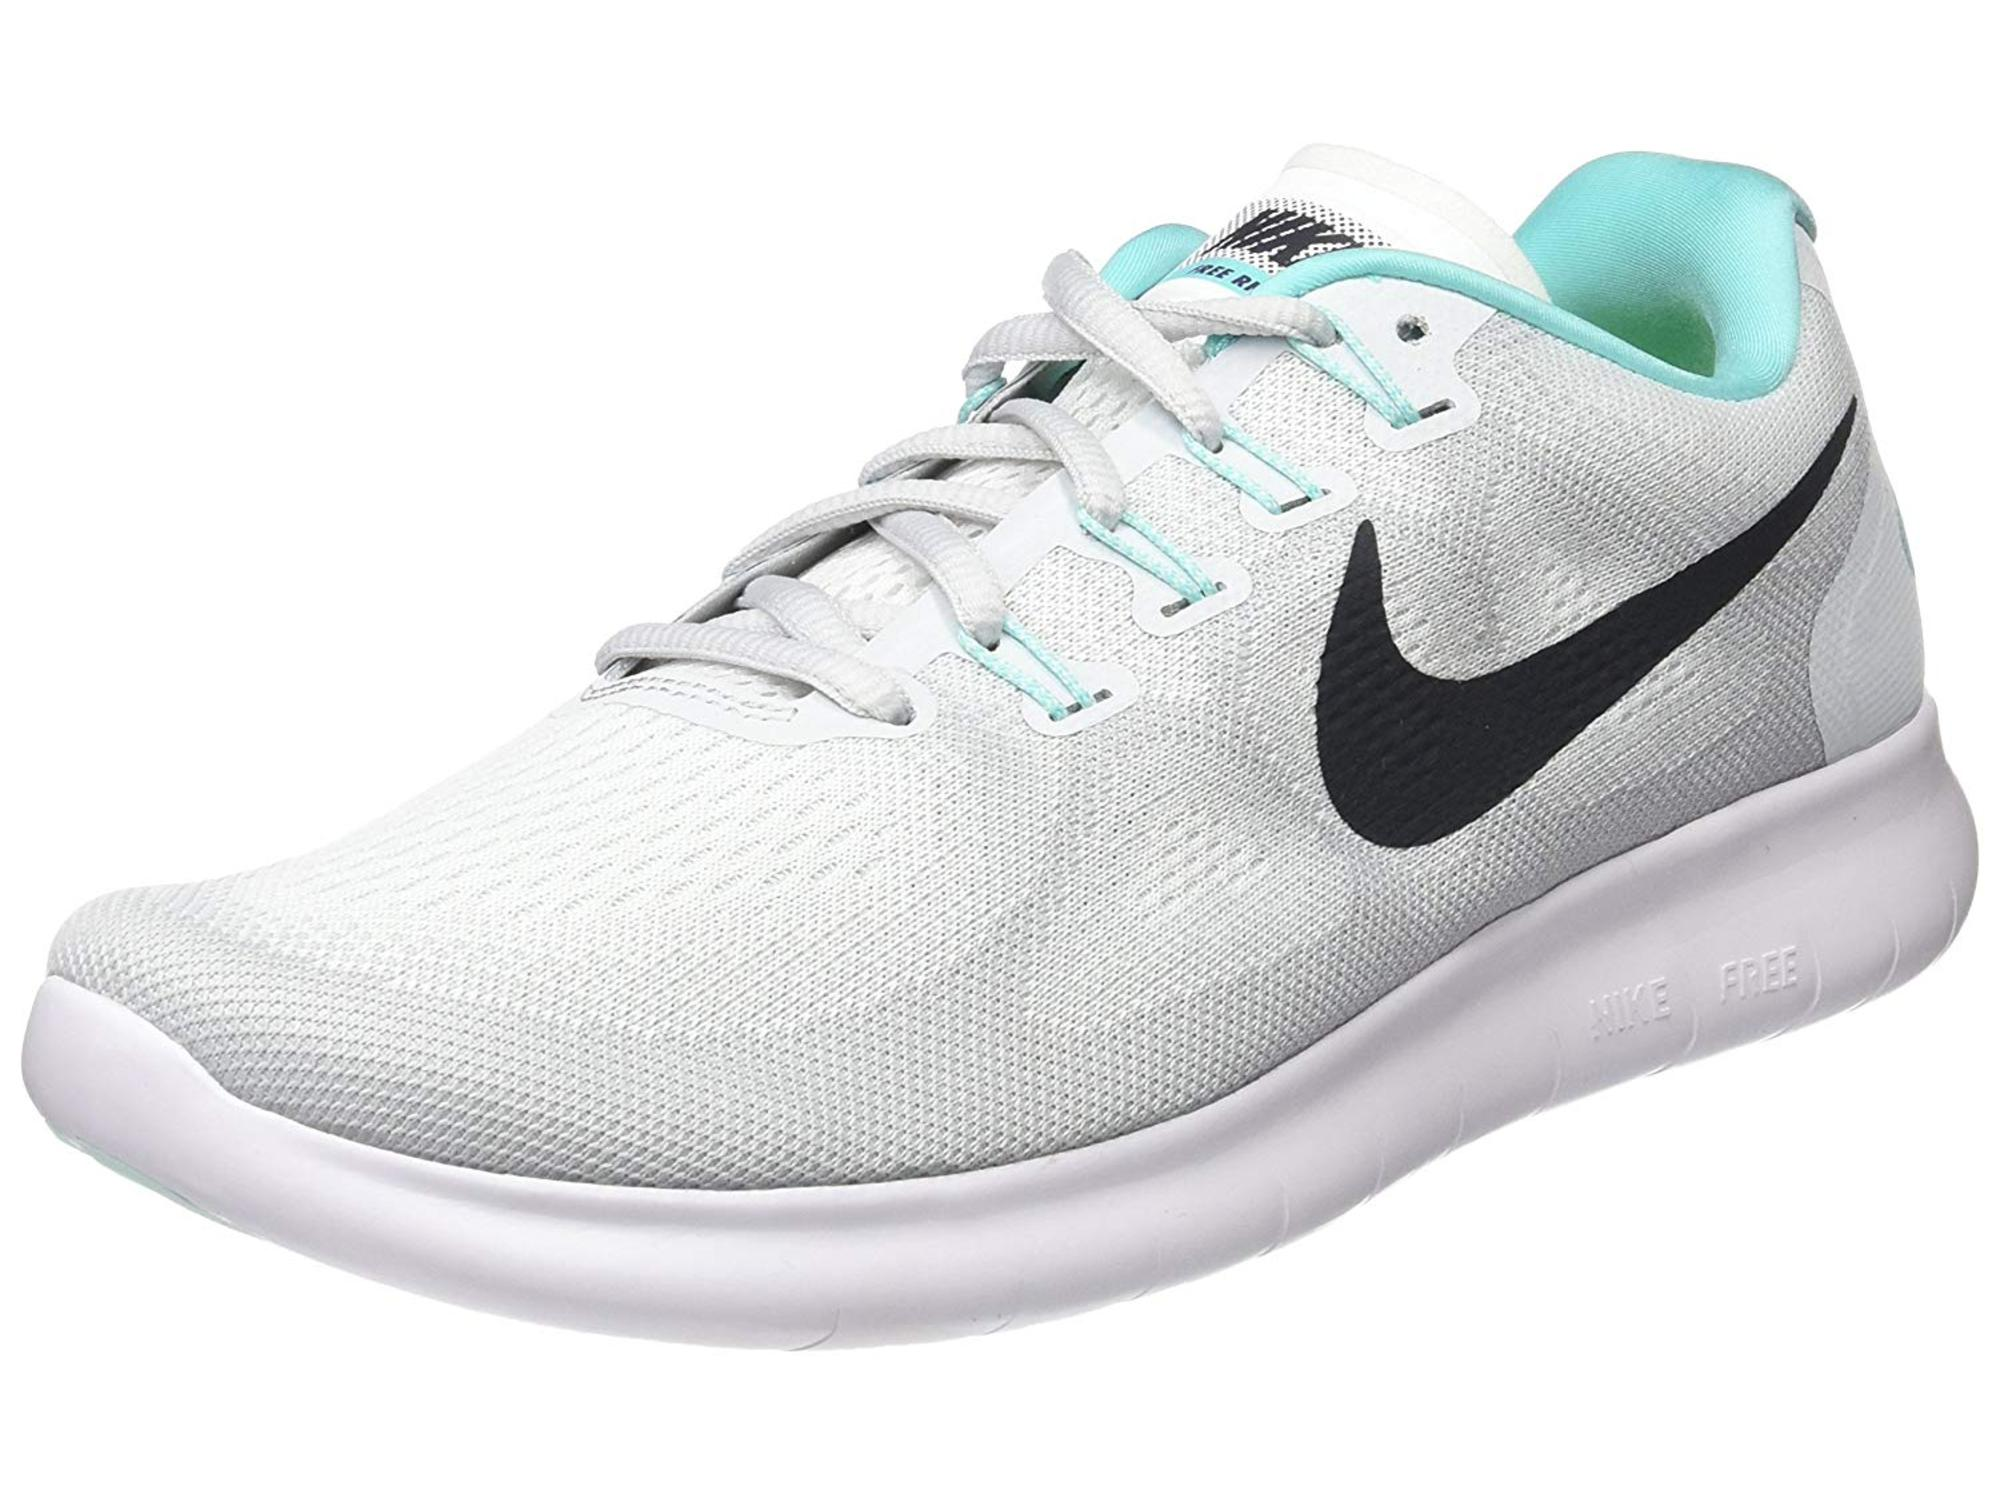 9705c8a675ee6 Nike Womens Nike flex 2017 RN Fabric Low Top Lace Up Running